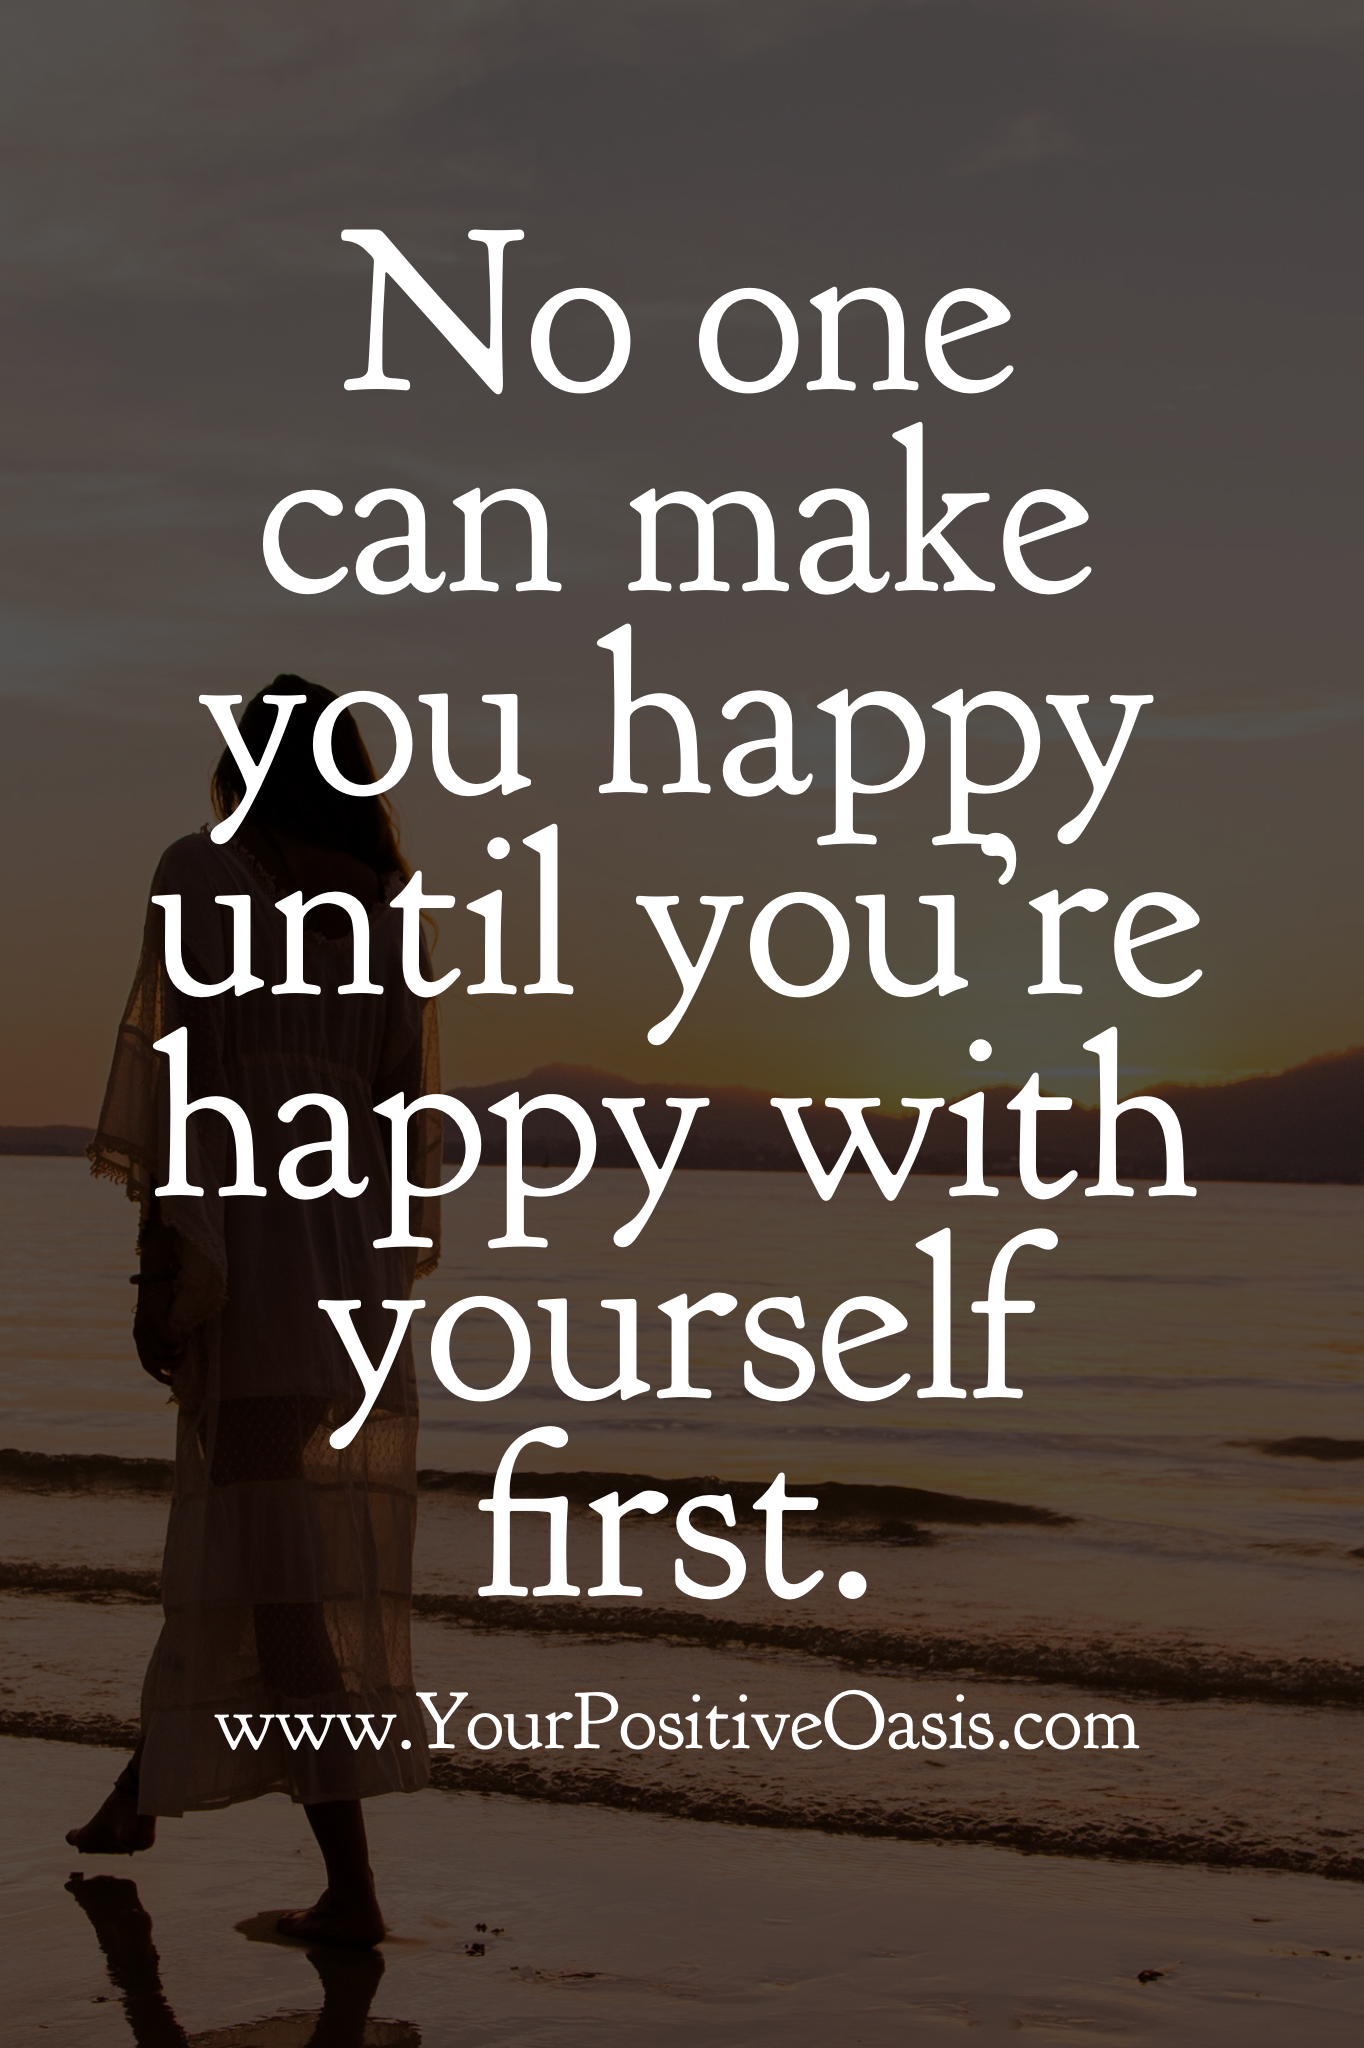 Quotes Archives Motivational Quotes For Life Motivational Quotes Life Quotes